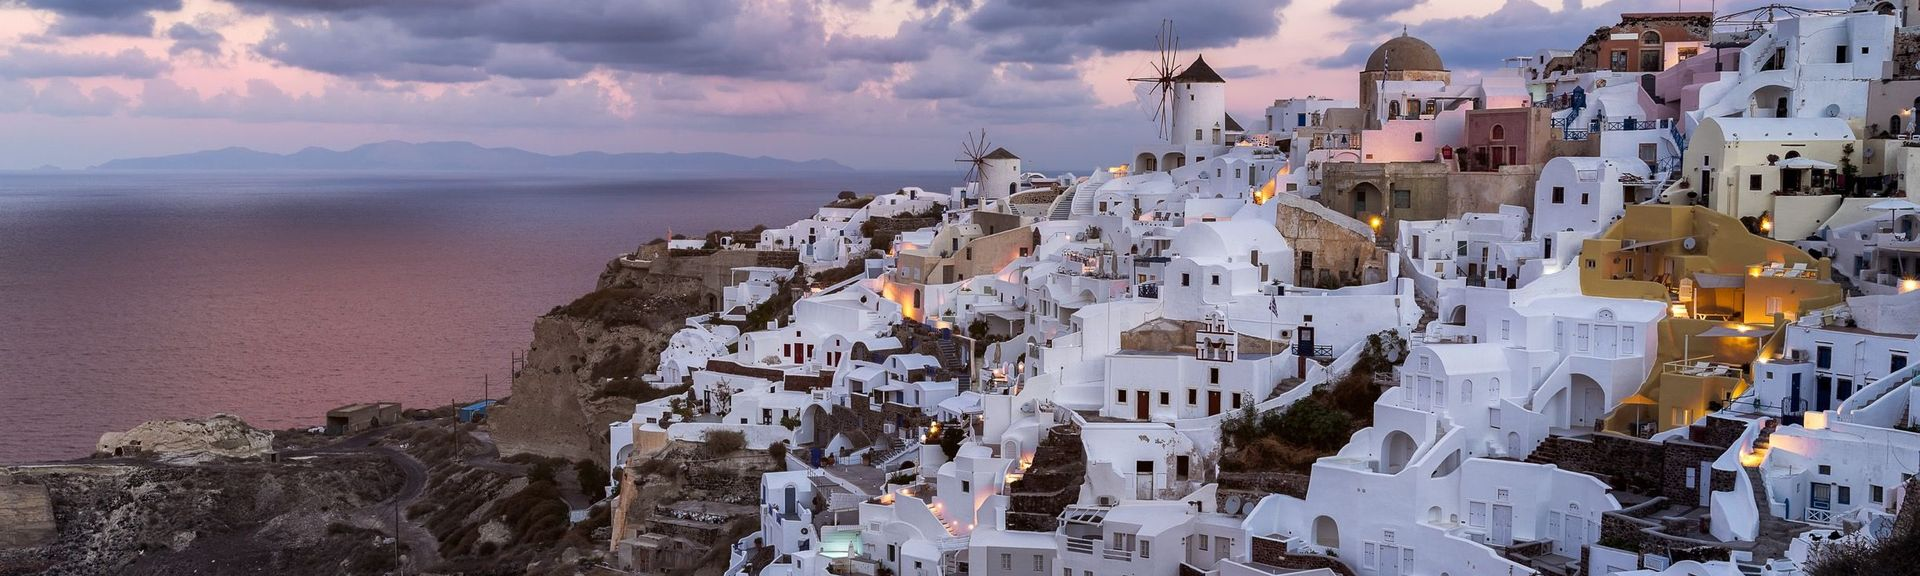 Oia Castle, Santorini, South Aegean, Greece